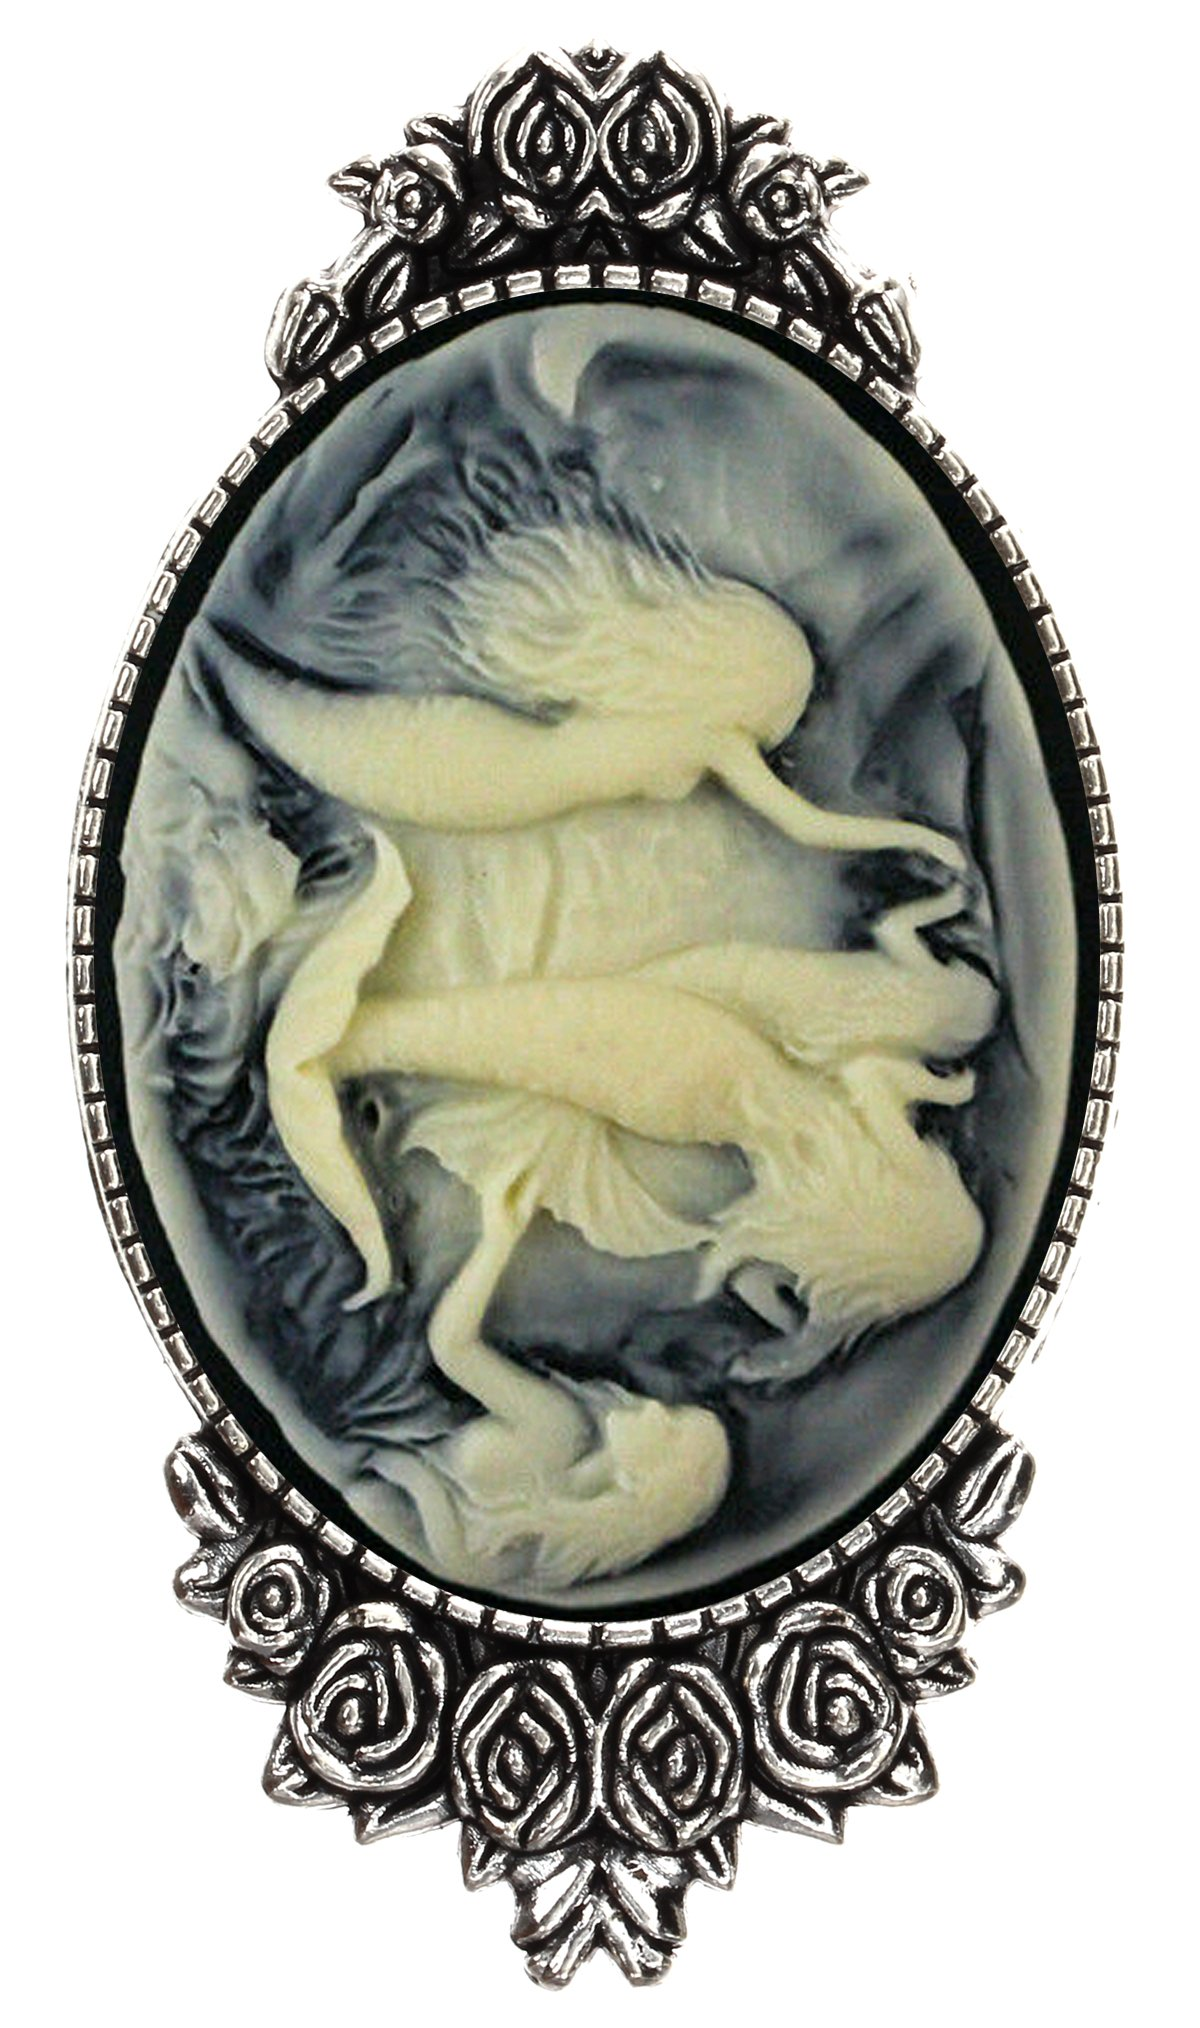 Mermaid Princess Brooch Pin Rose Decor Antique Silver Fantasy Jewelry Pouch for Gift